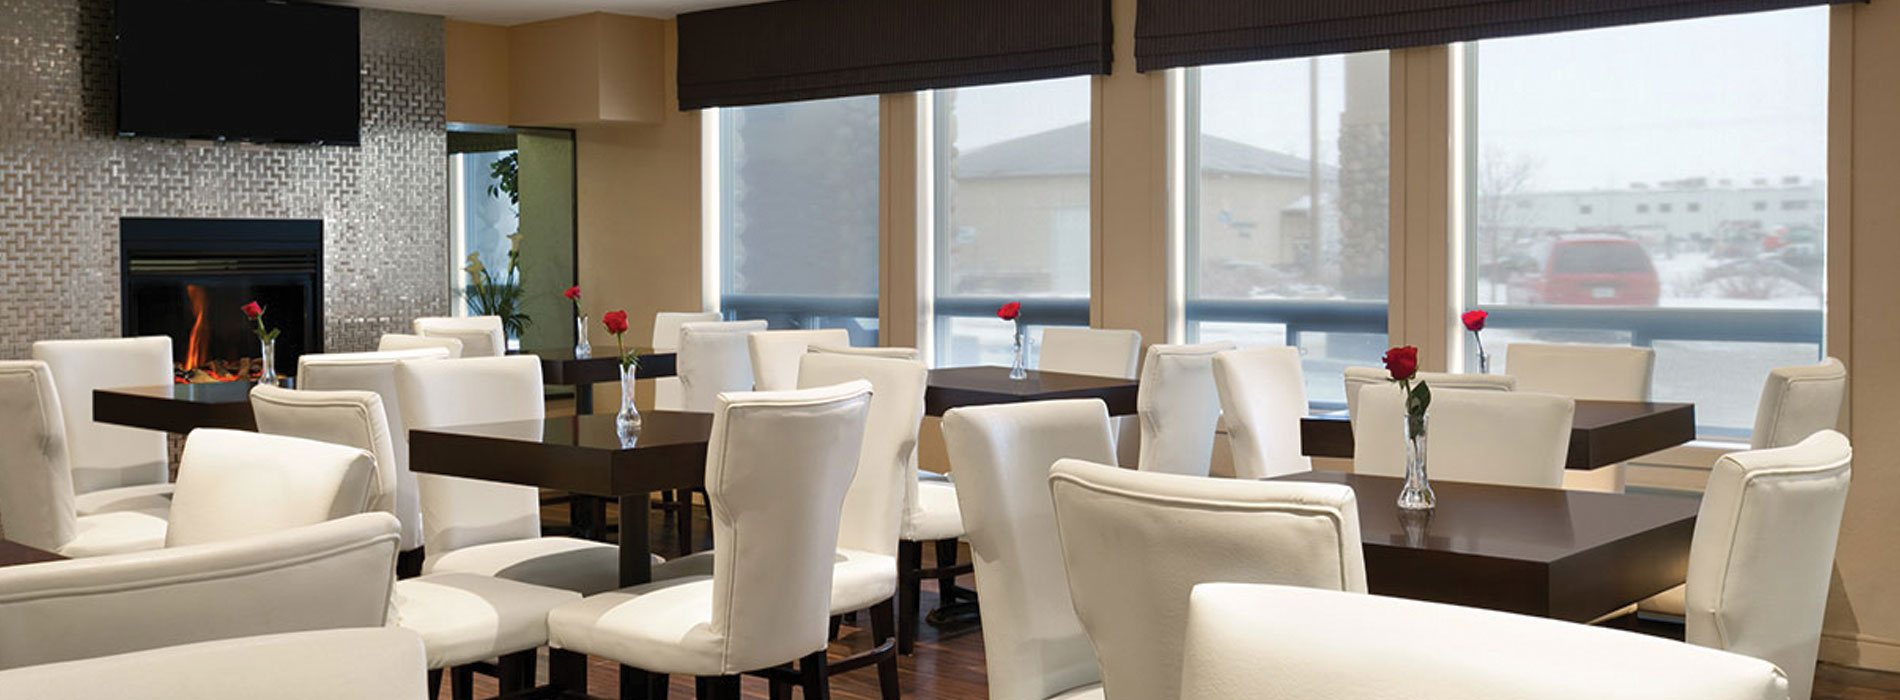 Natural light from large windows in the dining area at d3h Days Inn Regina, reflect off the shiny metallic surround of the glass enclosed fireplace, with a flatscreen TV mounted above.  Single red roses in bud vases sit atop square eating tables surrounded by white upholstered dining chairs.